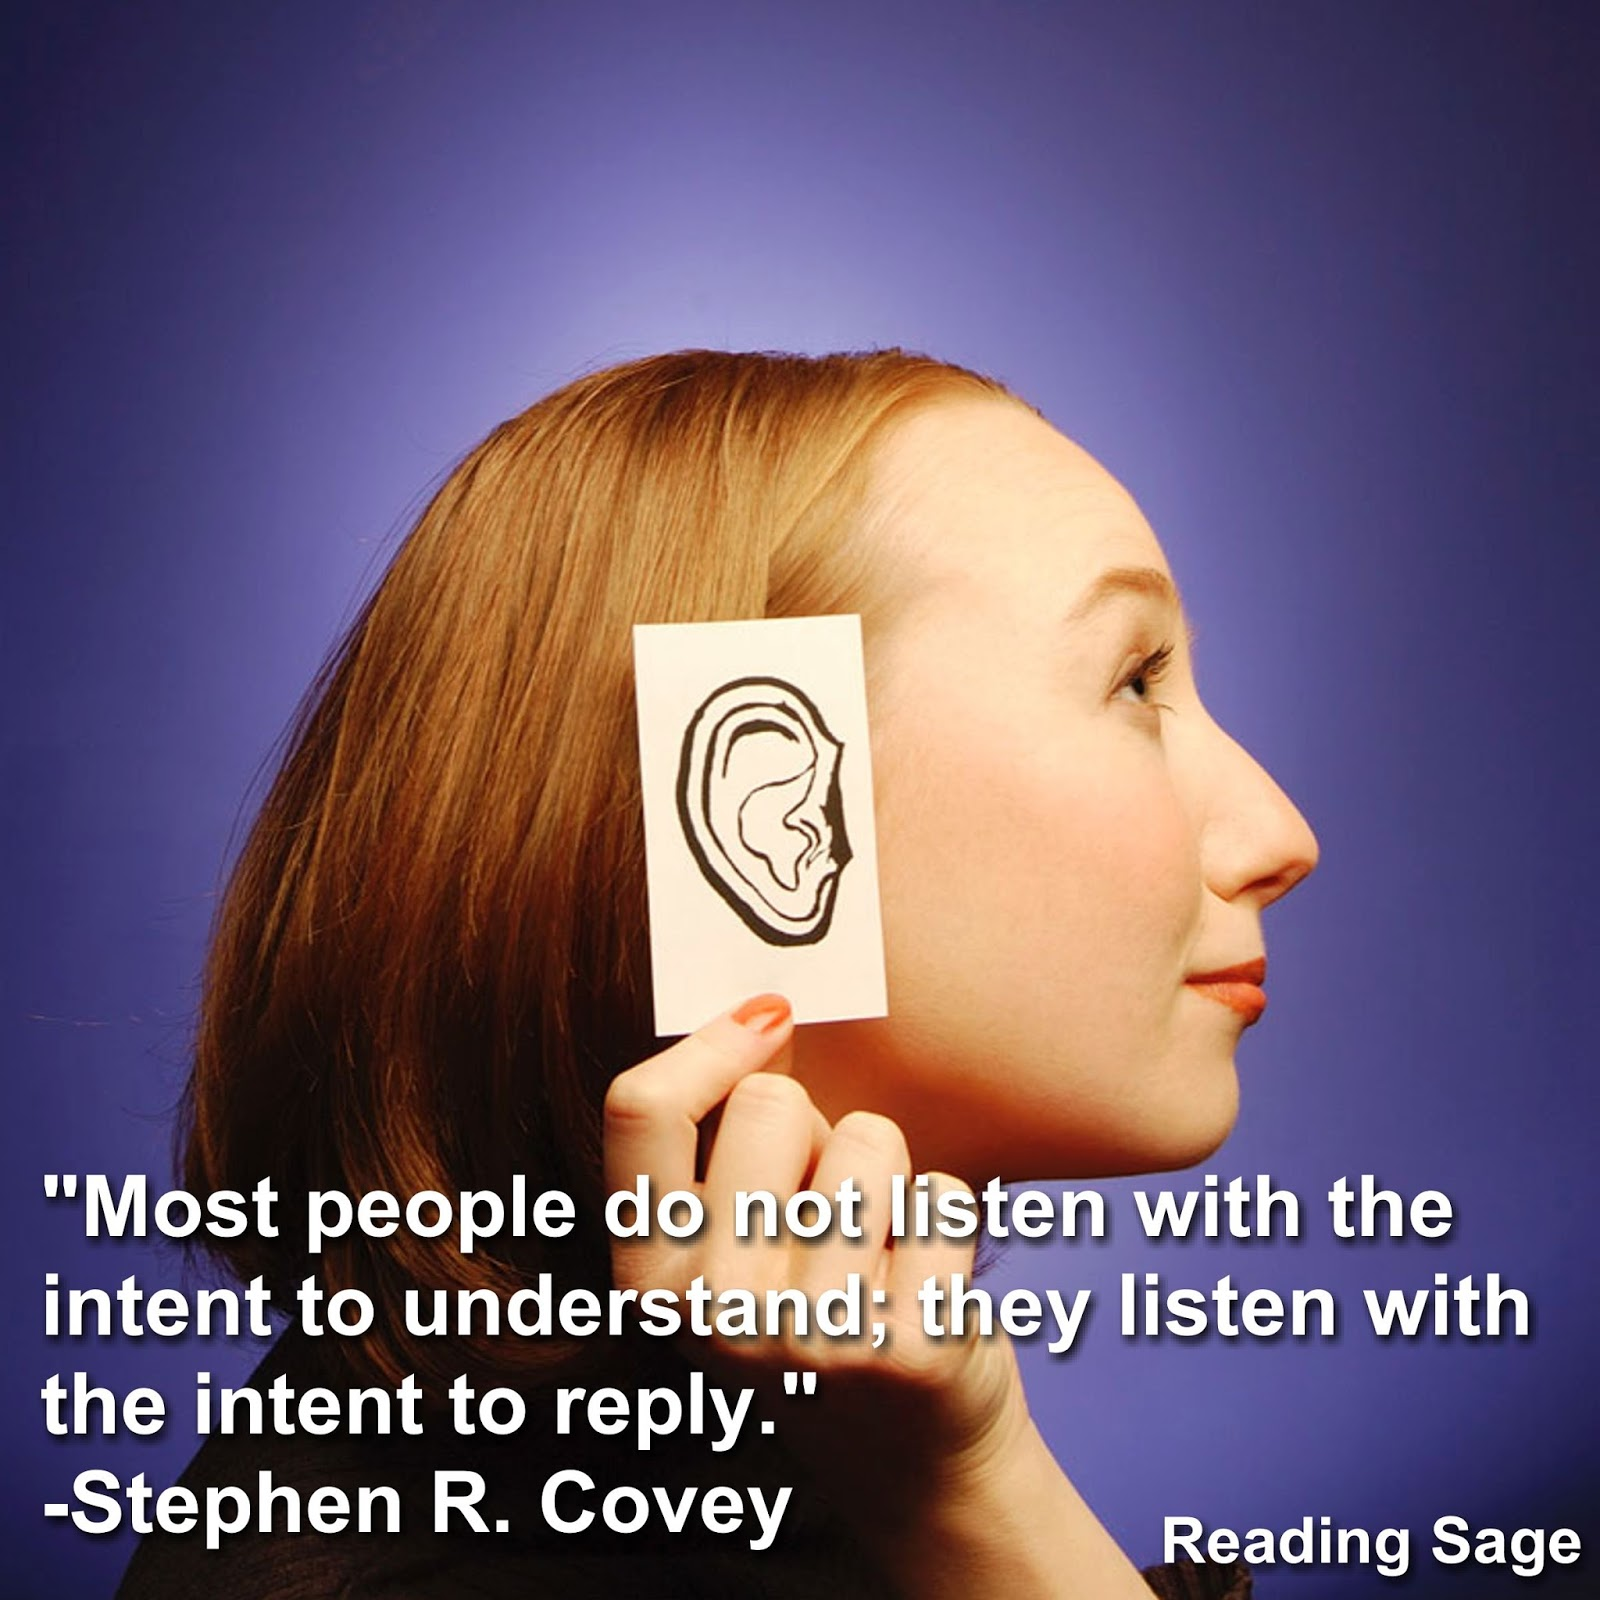 Reading Sage Help Students To Develop Focus Listening